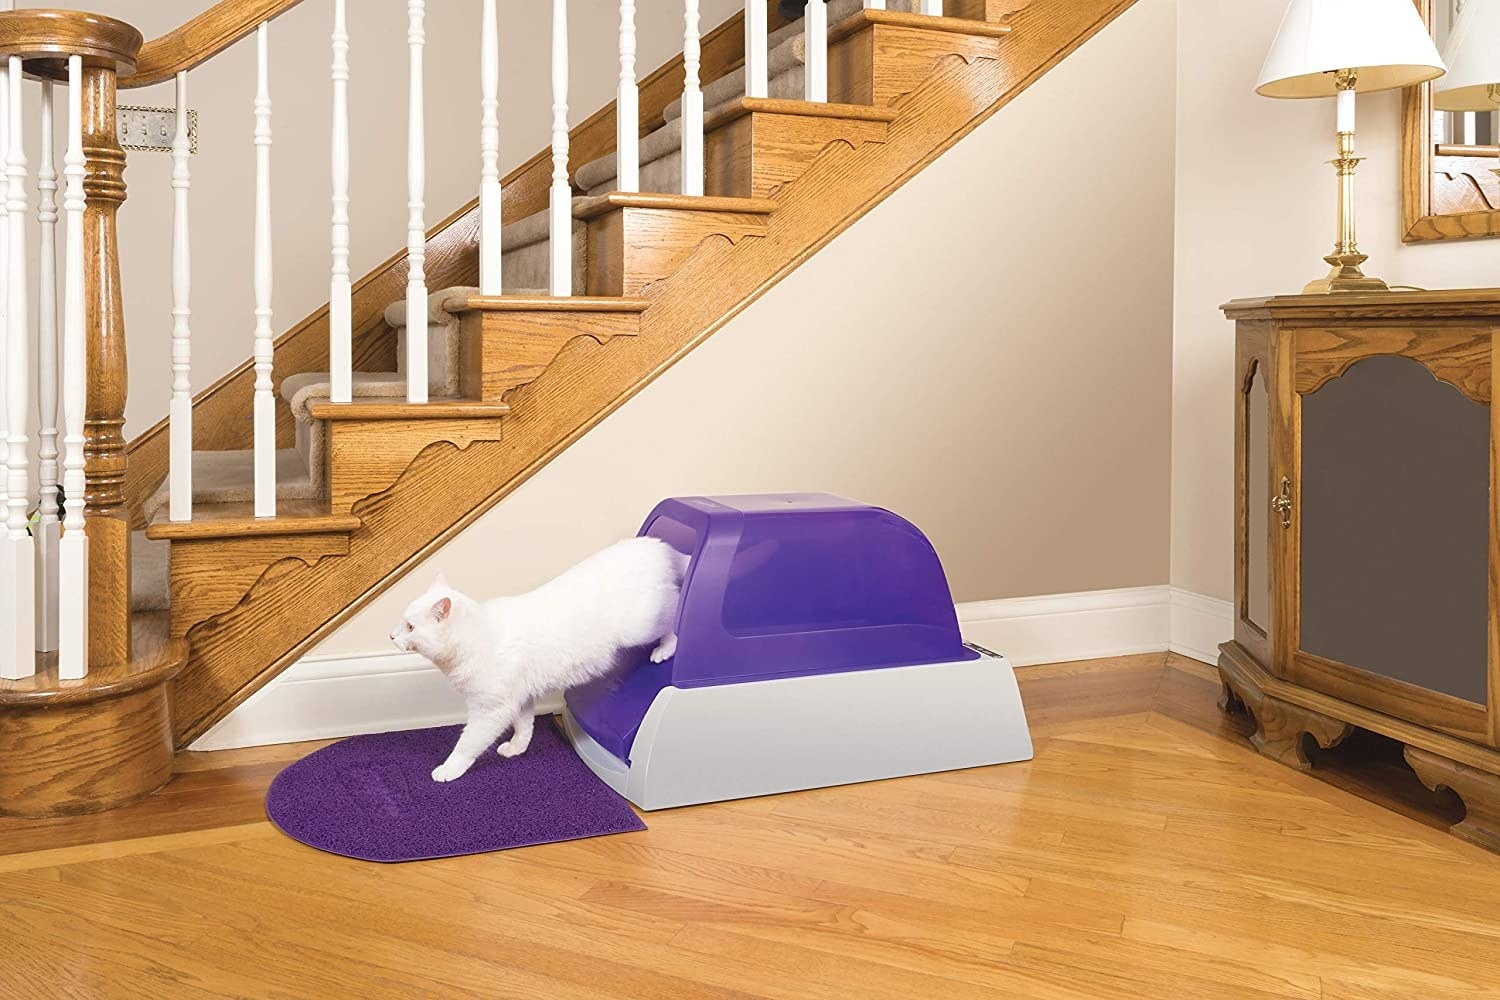 White cat walking out of purple and gray litter box